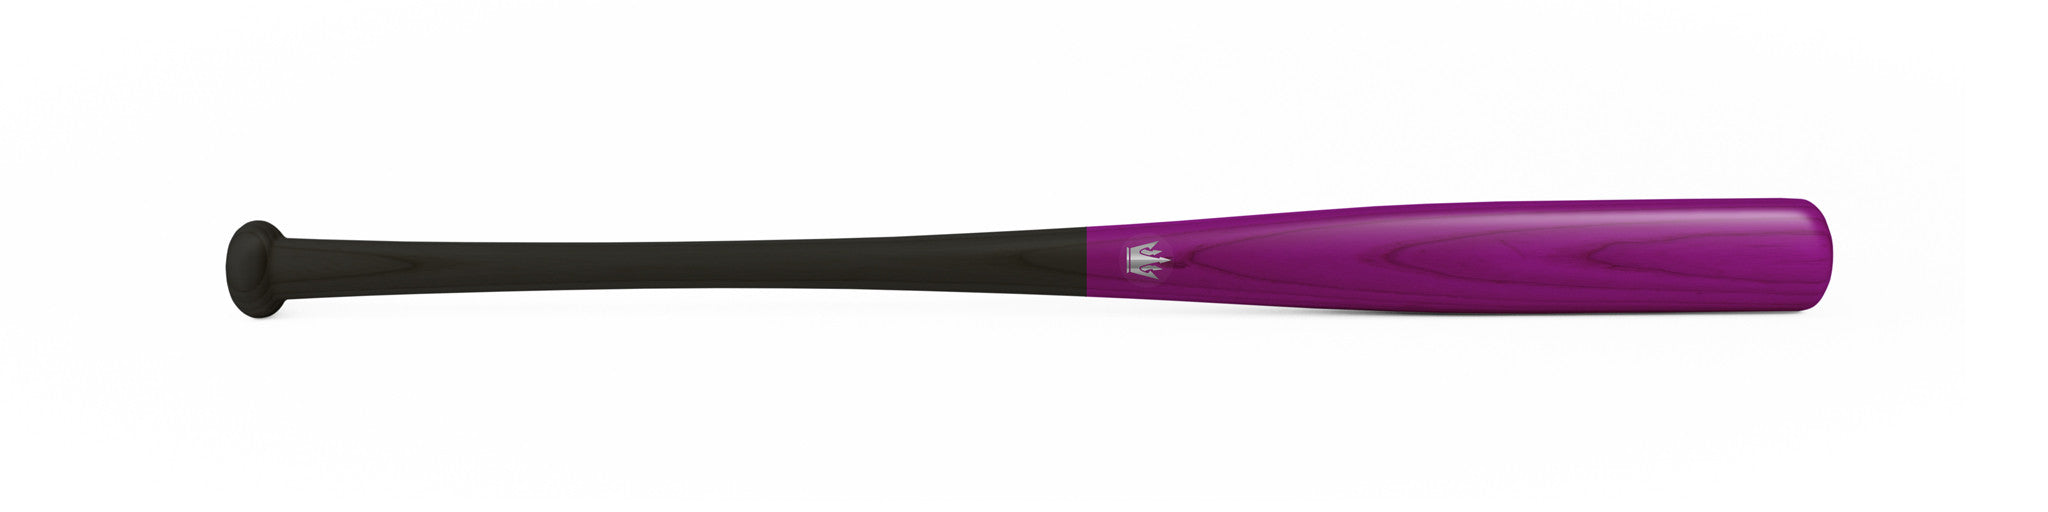 Wood bat - Ash model L10 Black Purple - 28